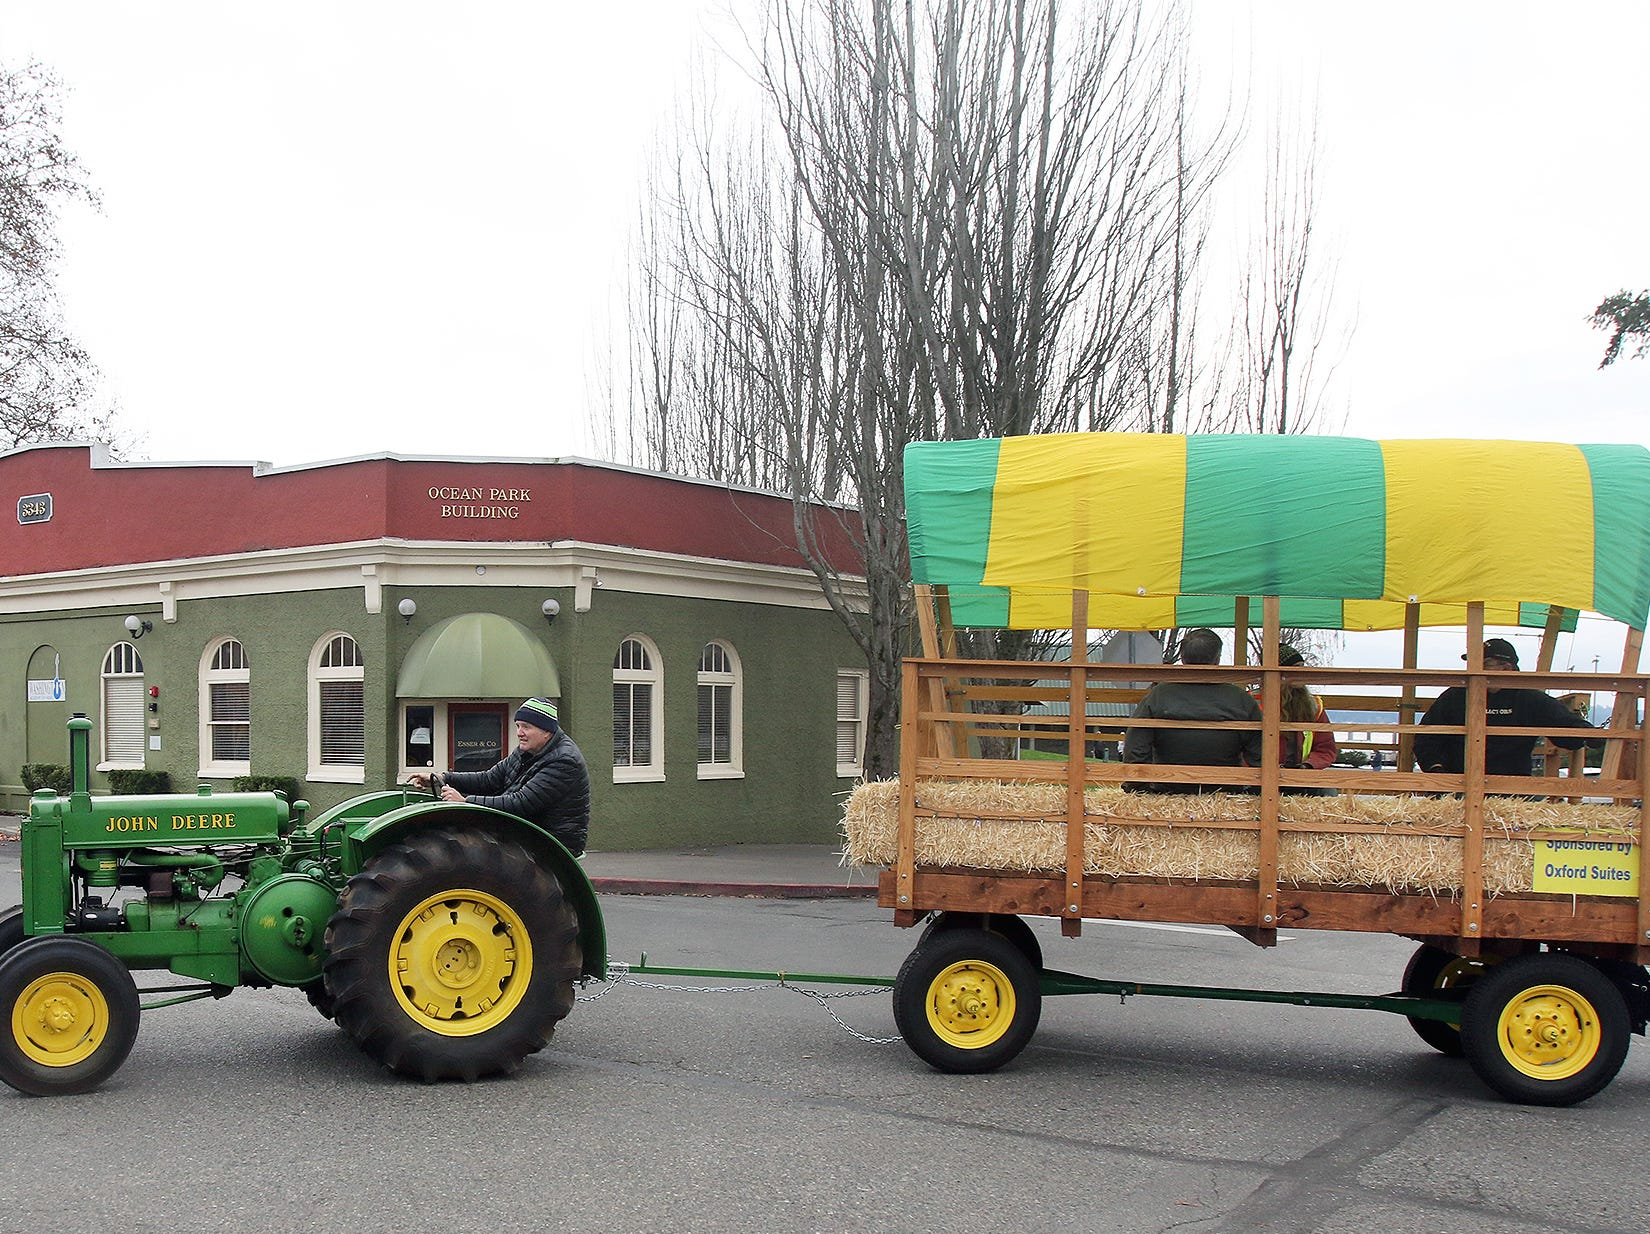 Hayrides through Old Town Silverdale sponsored by the Oxford Suites as part of the Silverdale 64th annual Christmas Tree Lighting event on Saturday, November 24, 2018.